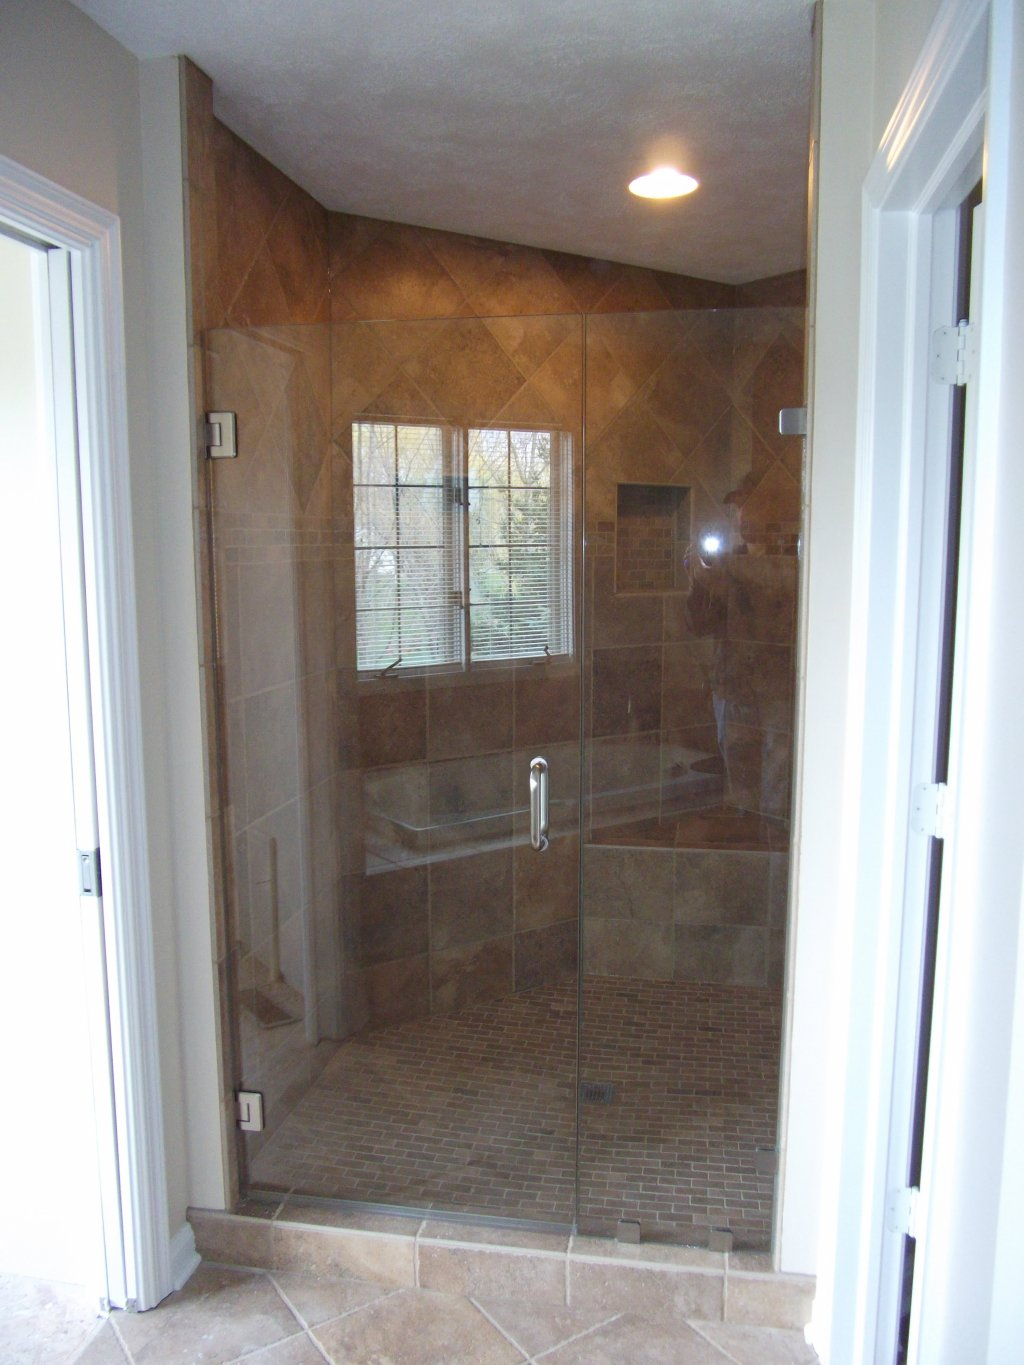 3 Steps To Take When You Need To Replace Your Glass Shower Door